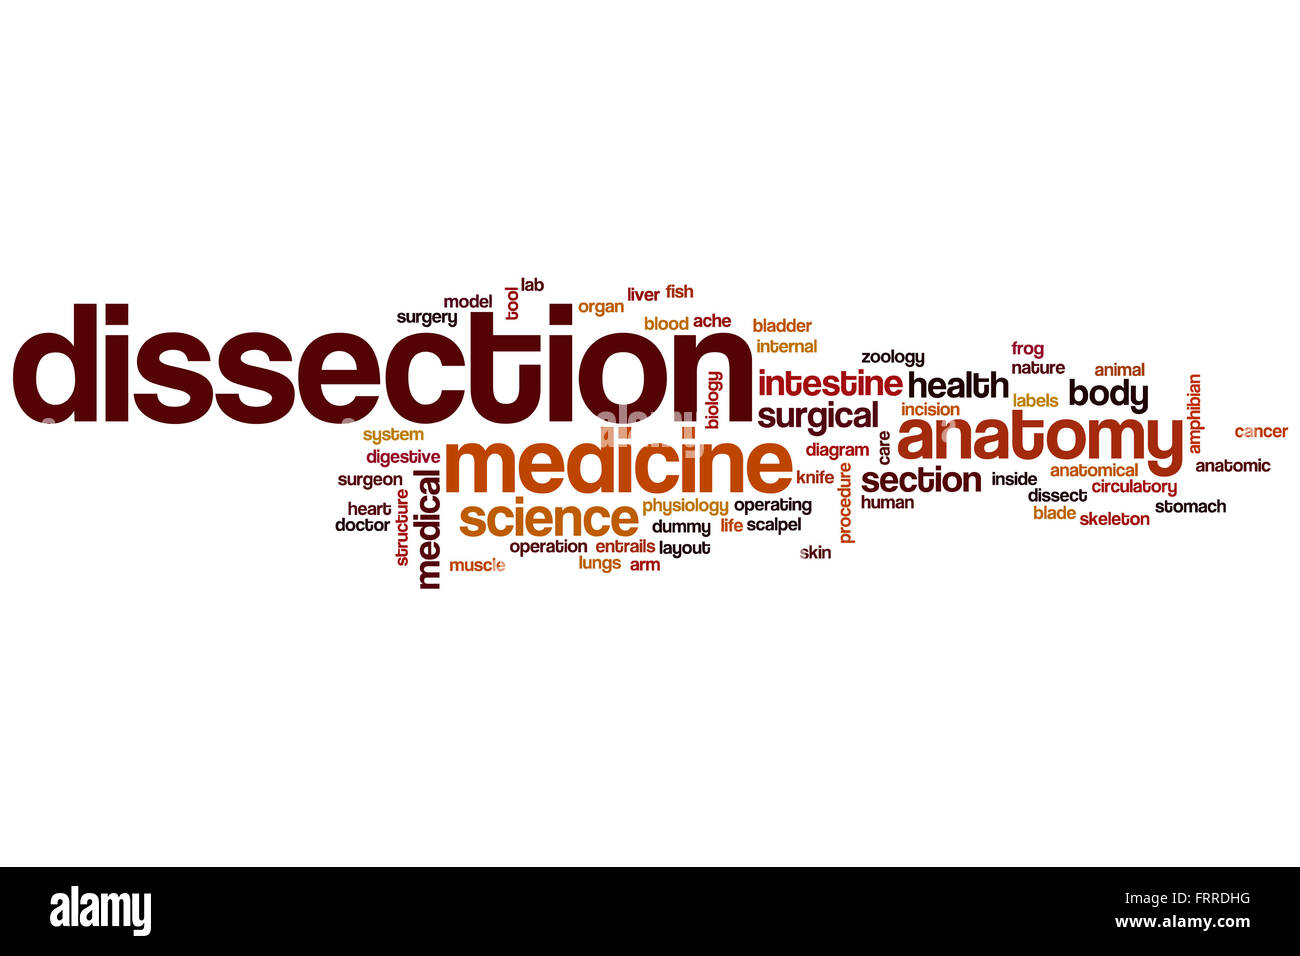 Dissection word cloud concept Stock Photo: 100704508 - Alamy